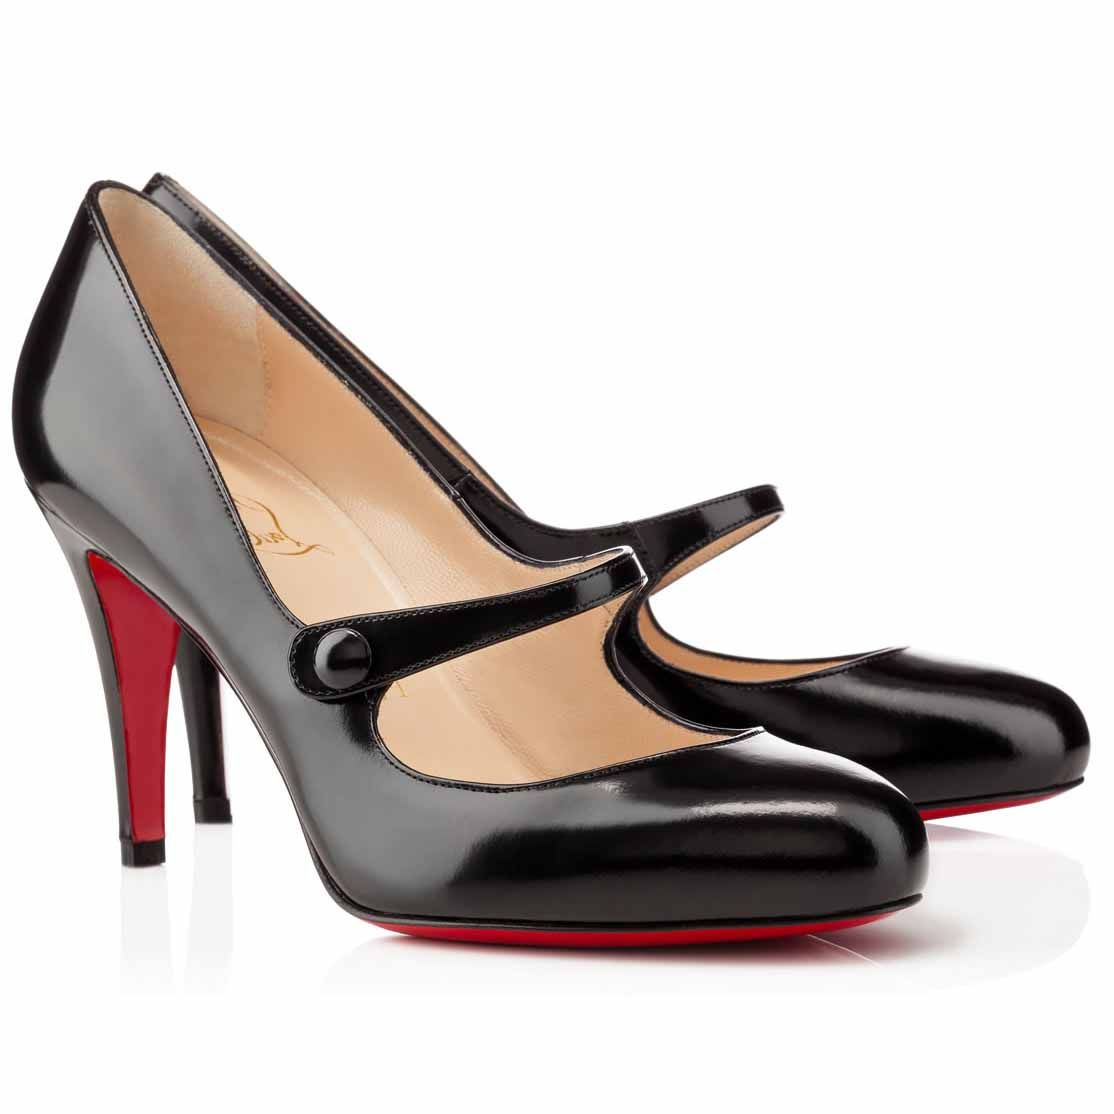 52fce68535c8 Christian Louboutin Charleen 85mm Leather Mary Jane Pumps Black Christian  Louboutin Red Bottoms